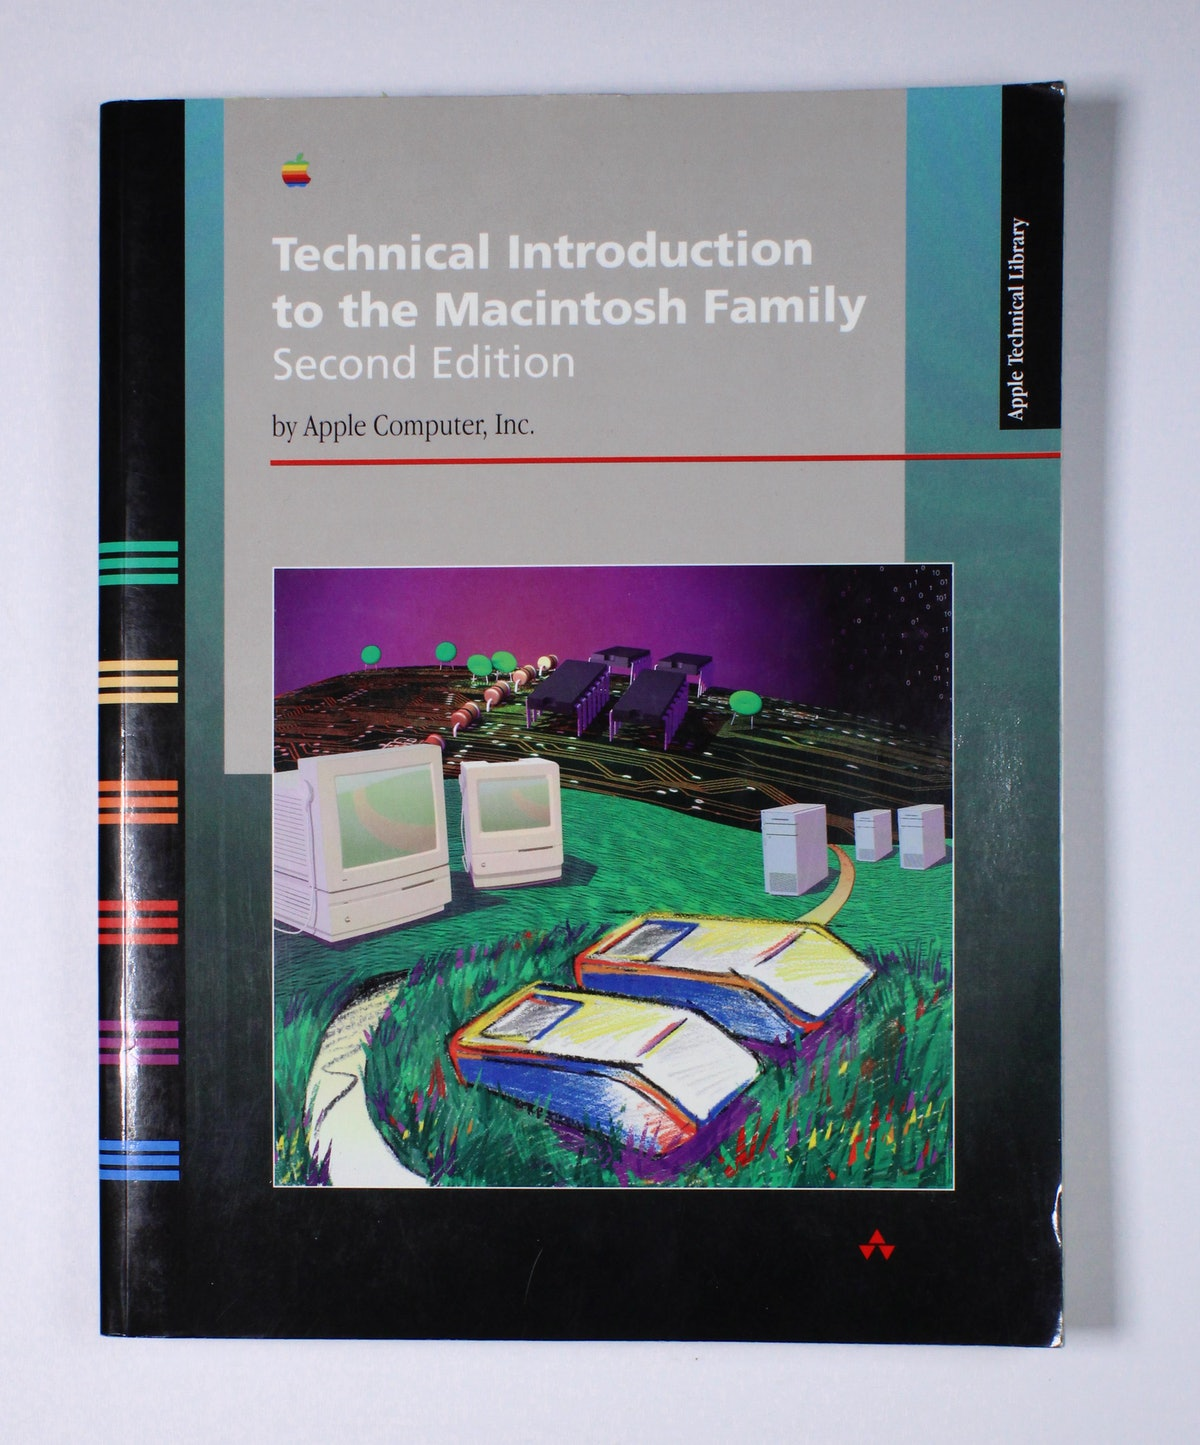 Technical Introduction to the Macintosh Family